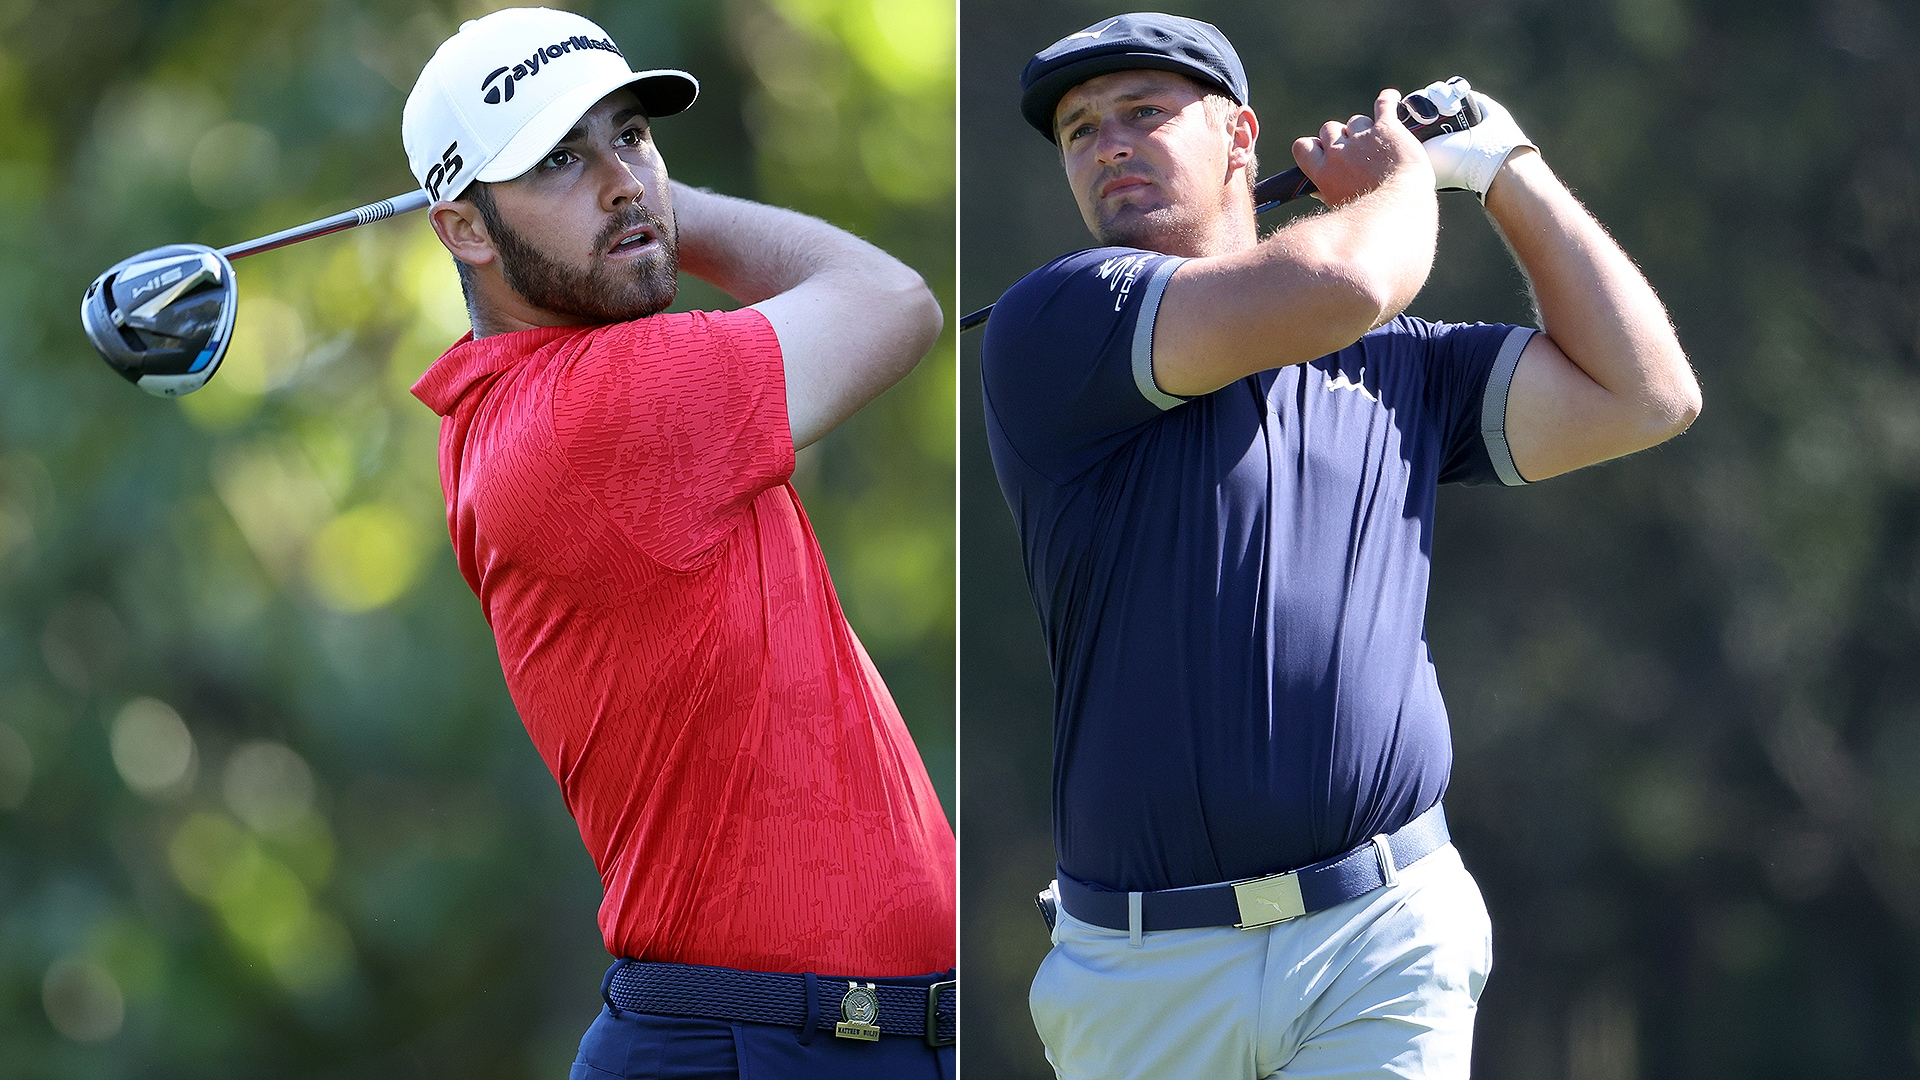 Matthew Wolff ascends, Bryson leads Deschambo by 2 on his US Open debut